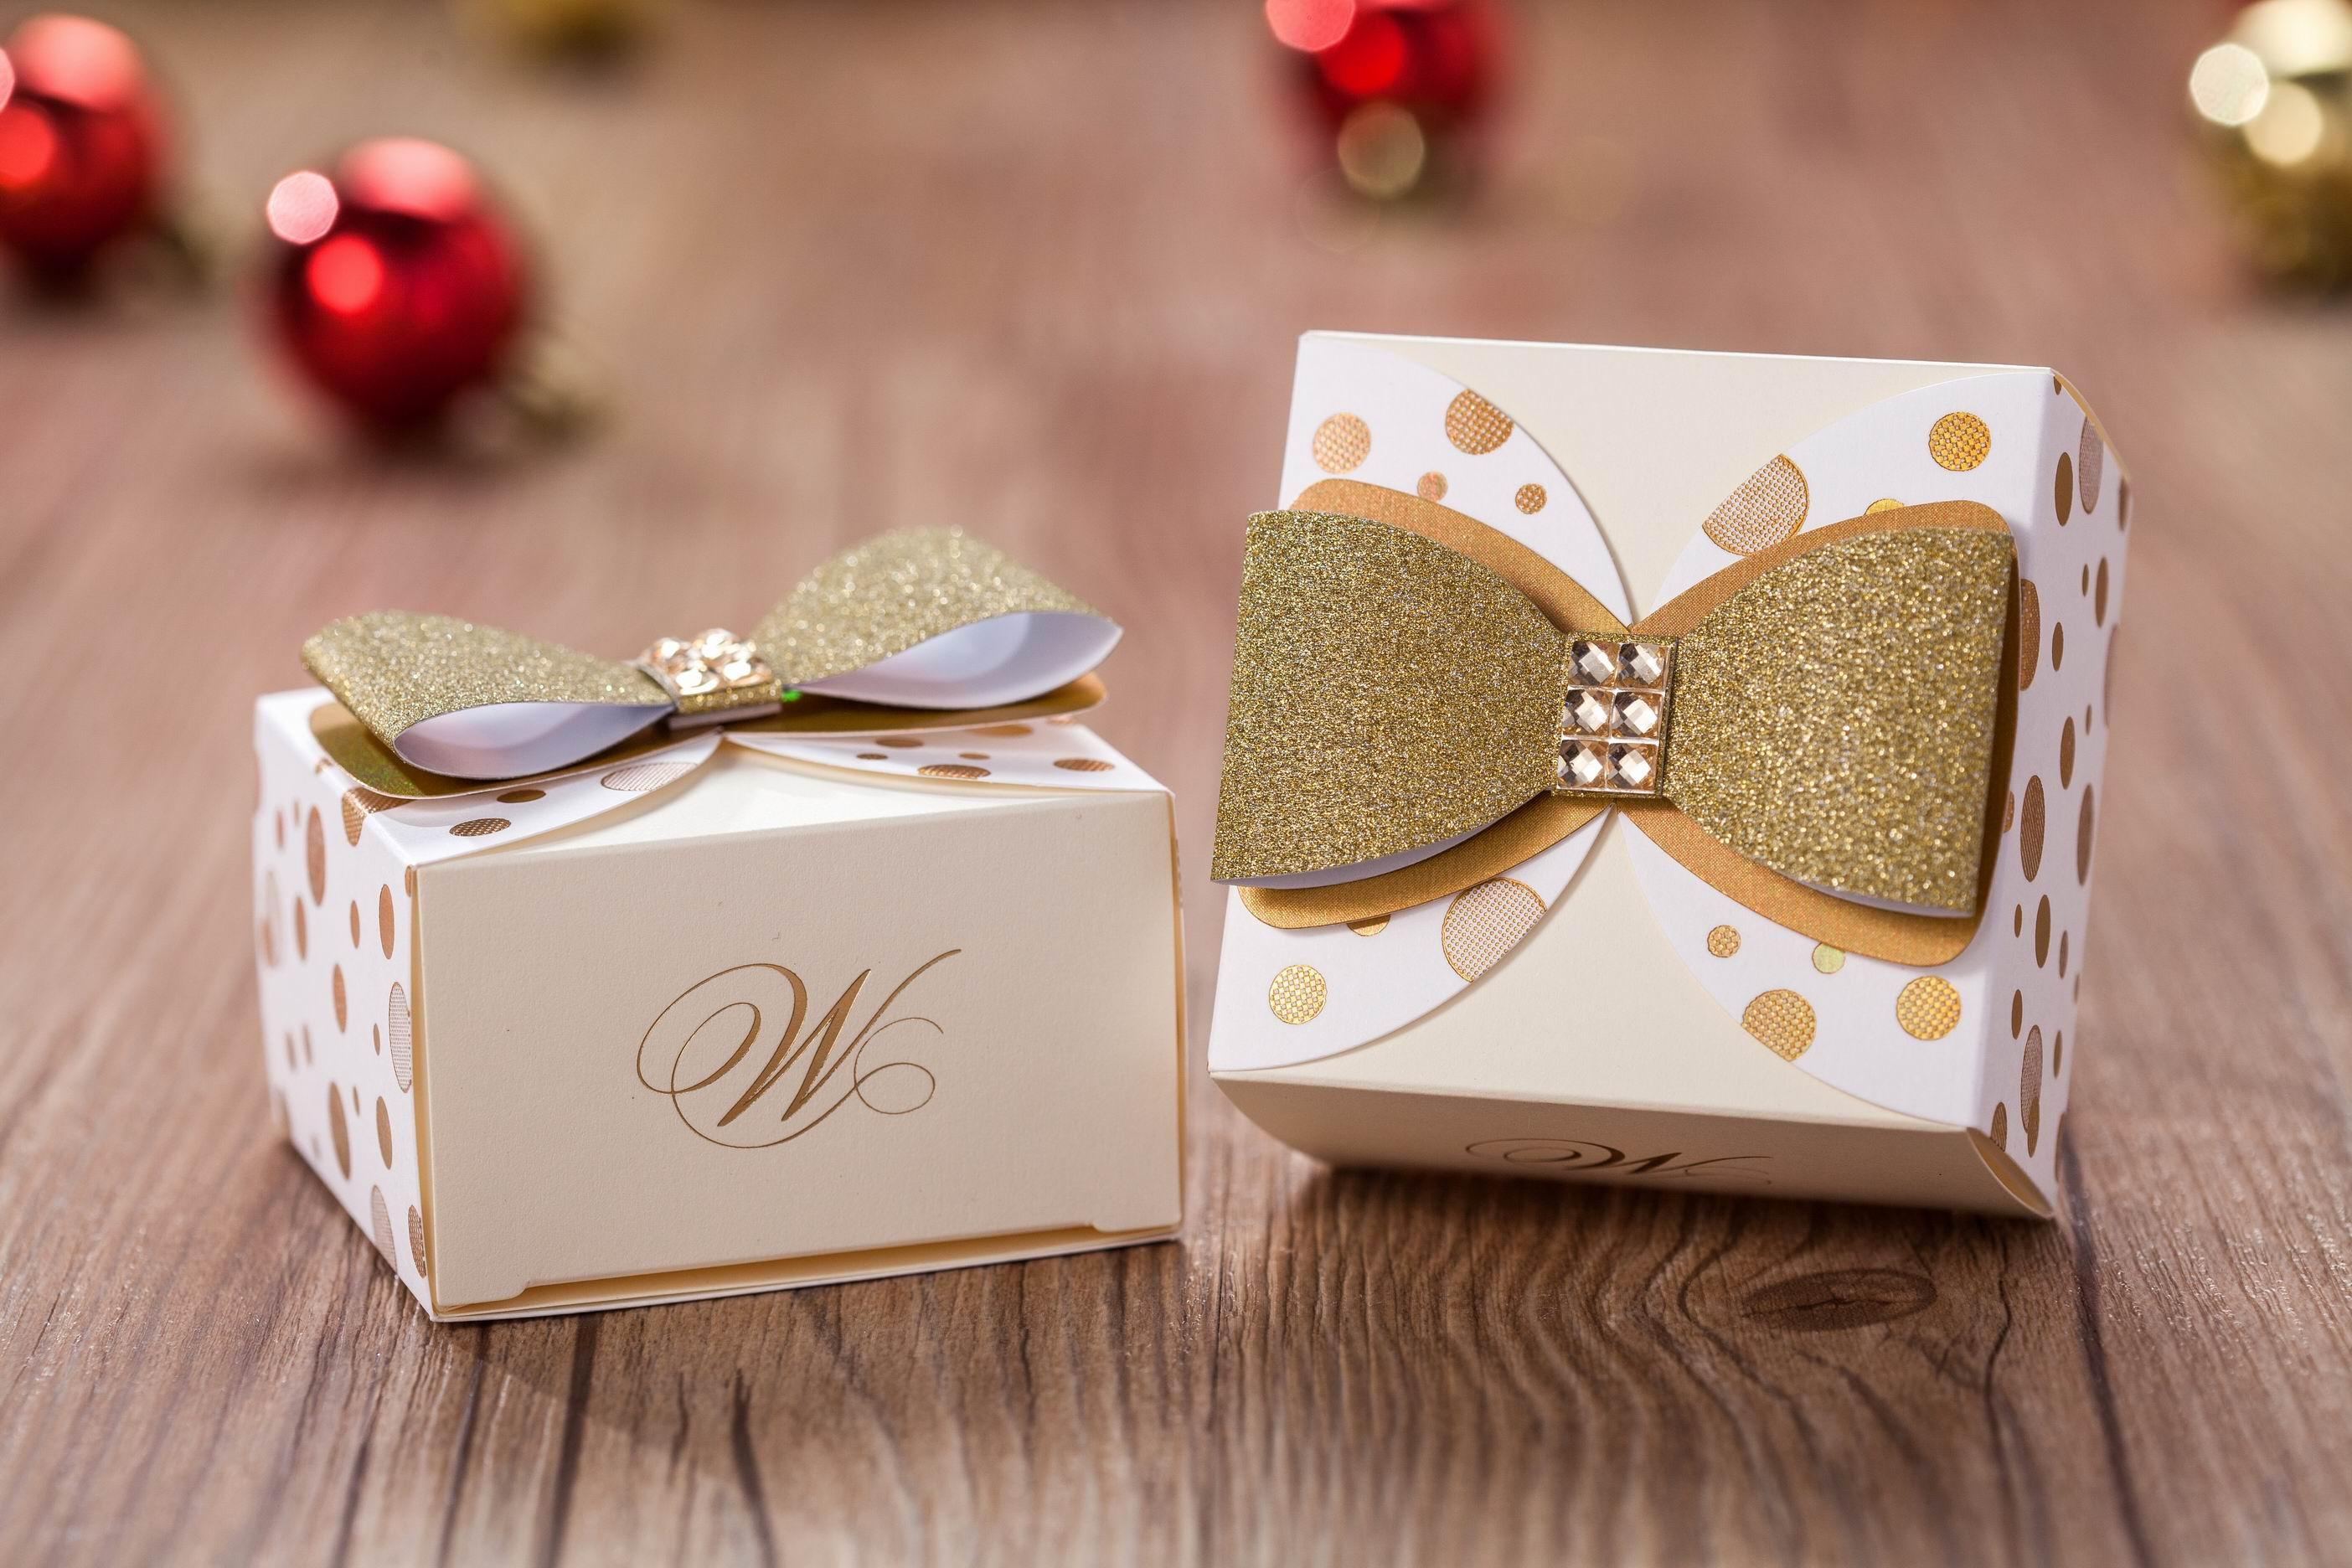 Google Image Result For Https Www Greenhandle In Blog Wp Content Uploads 2017 05 Choco Cover Jpg Wedding Gift Favors Wedding Gift Bags Best Wedding Favors